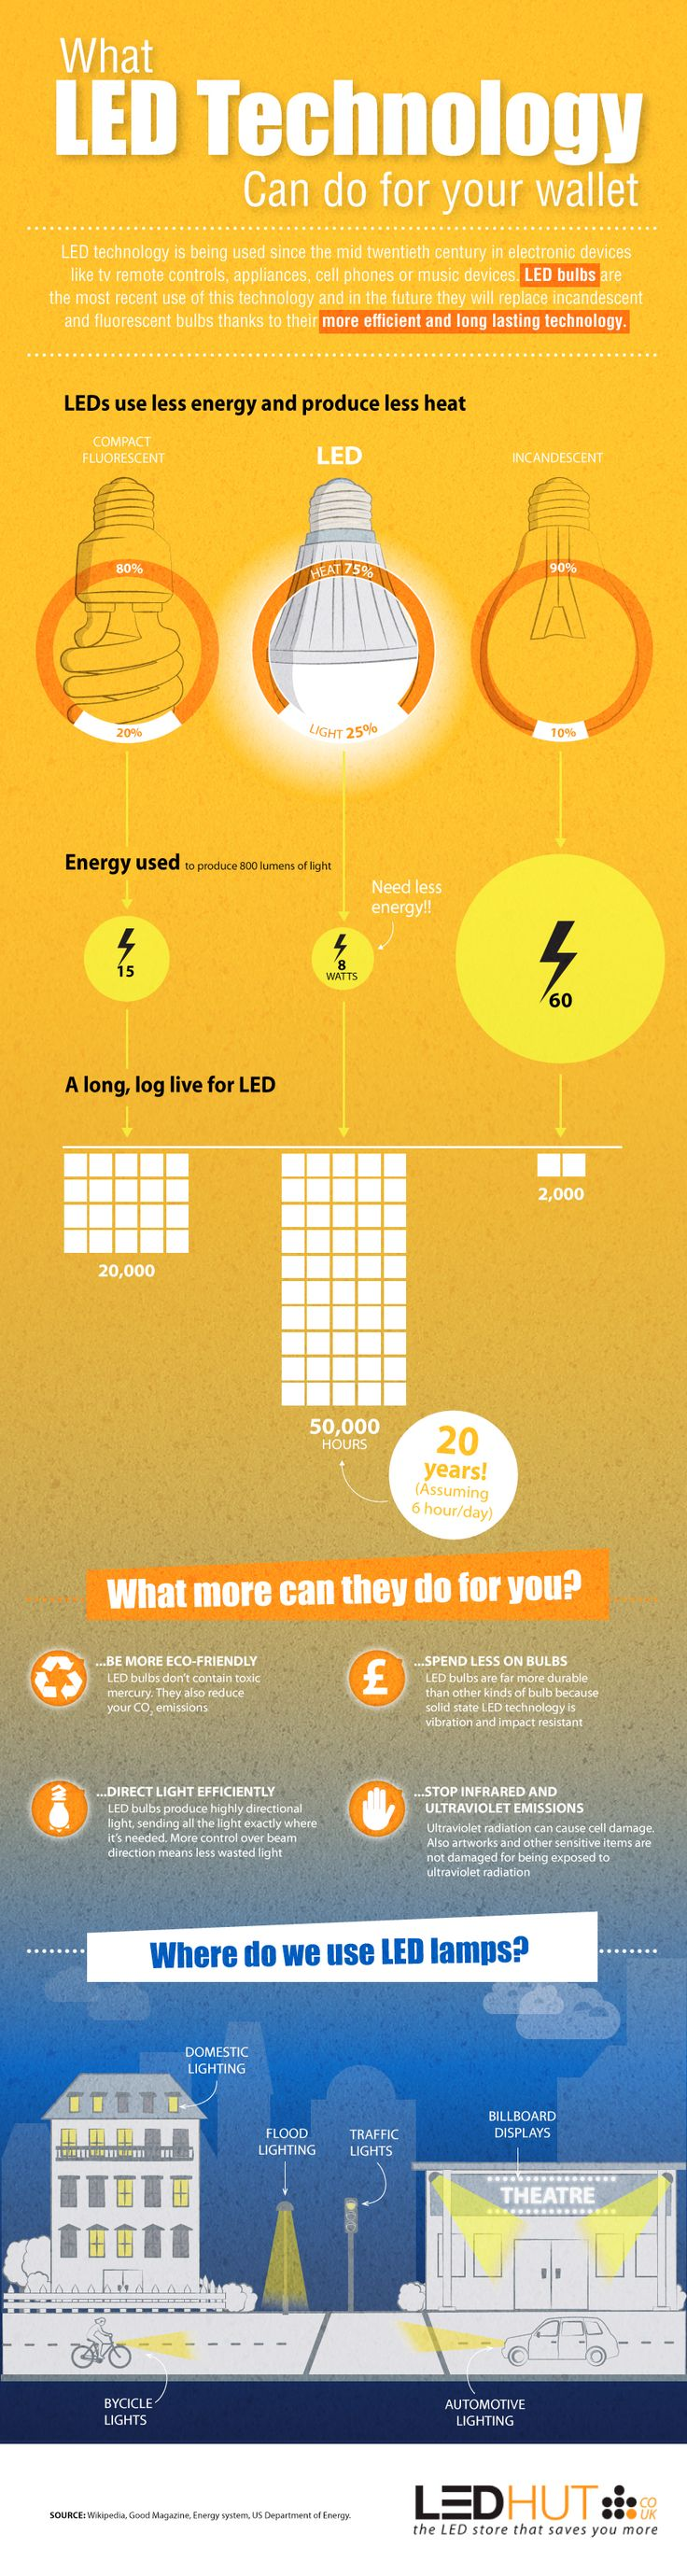 How LED Lights Can Save You Money | Visit our new infographic gallery at visualoop.com/